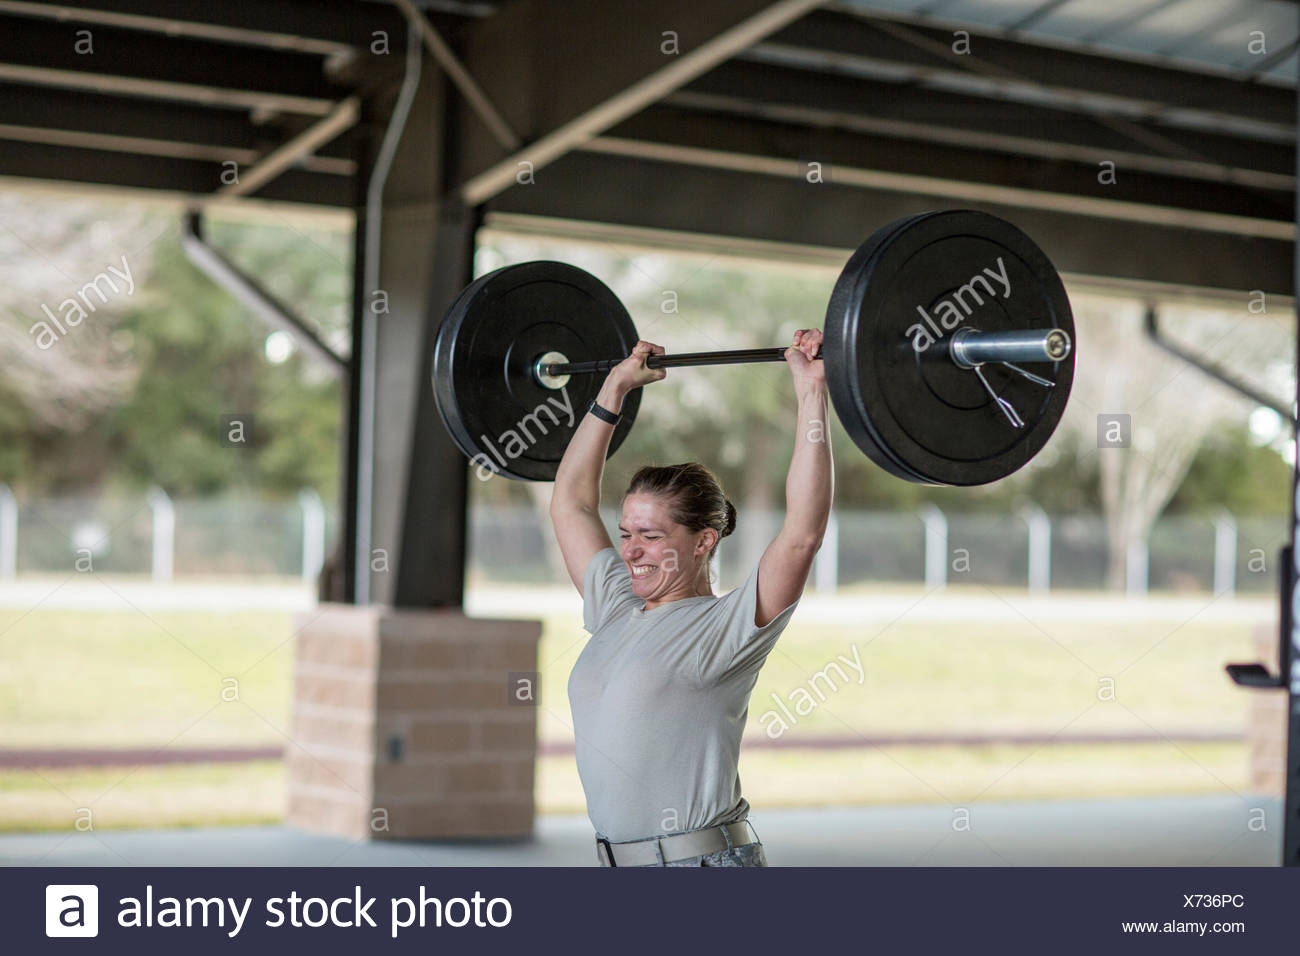 Determined female soldier lifting barbell at military air force base - Stock Image